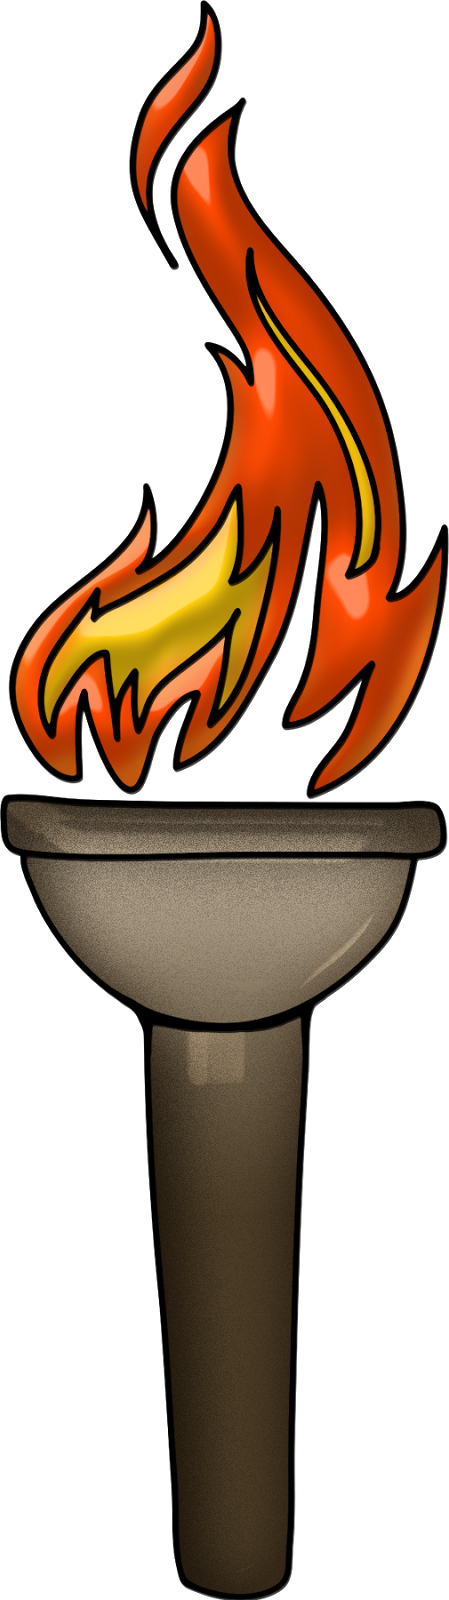 Pass the Torch Linky ~ Using -er Suffix - Torch HD PNG